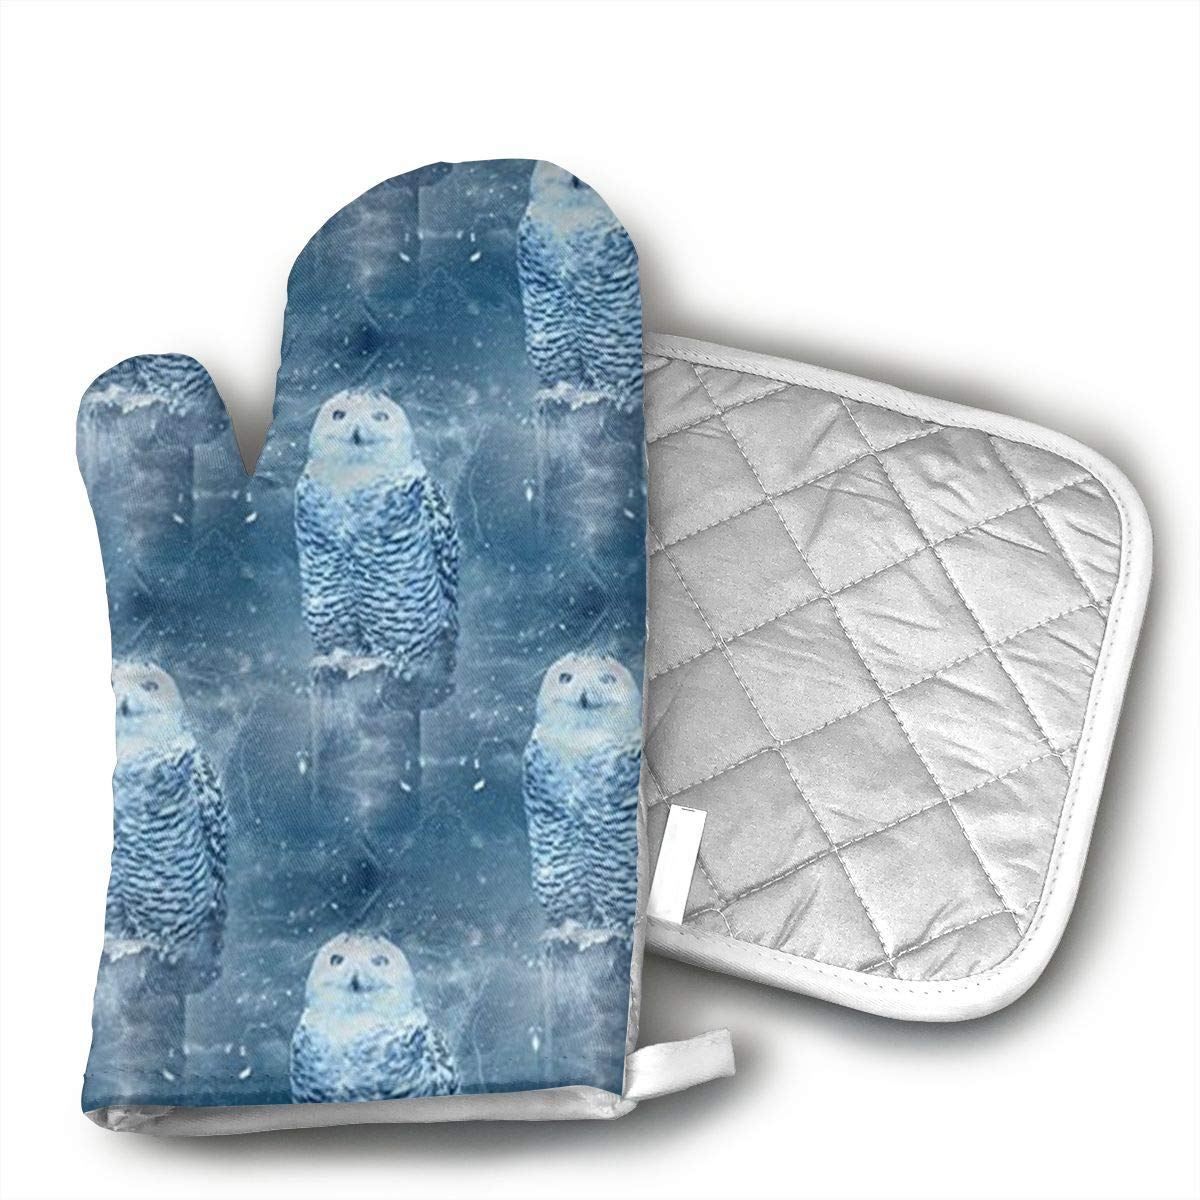 Jiqnajn6 Snowy Owl in Winter Oven Mitts,Heat Resistant Oven Gloves, Safe Cooking Baking, Grilling, Barbecue, Machine Washable,Pot Holders.